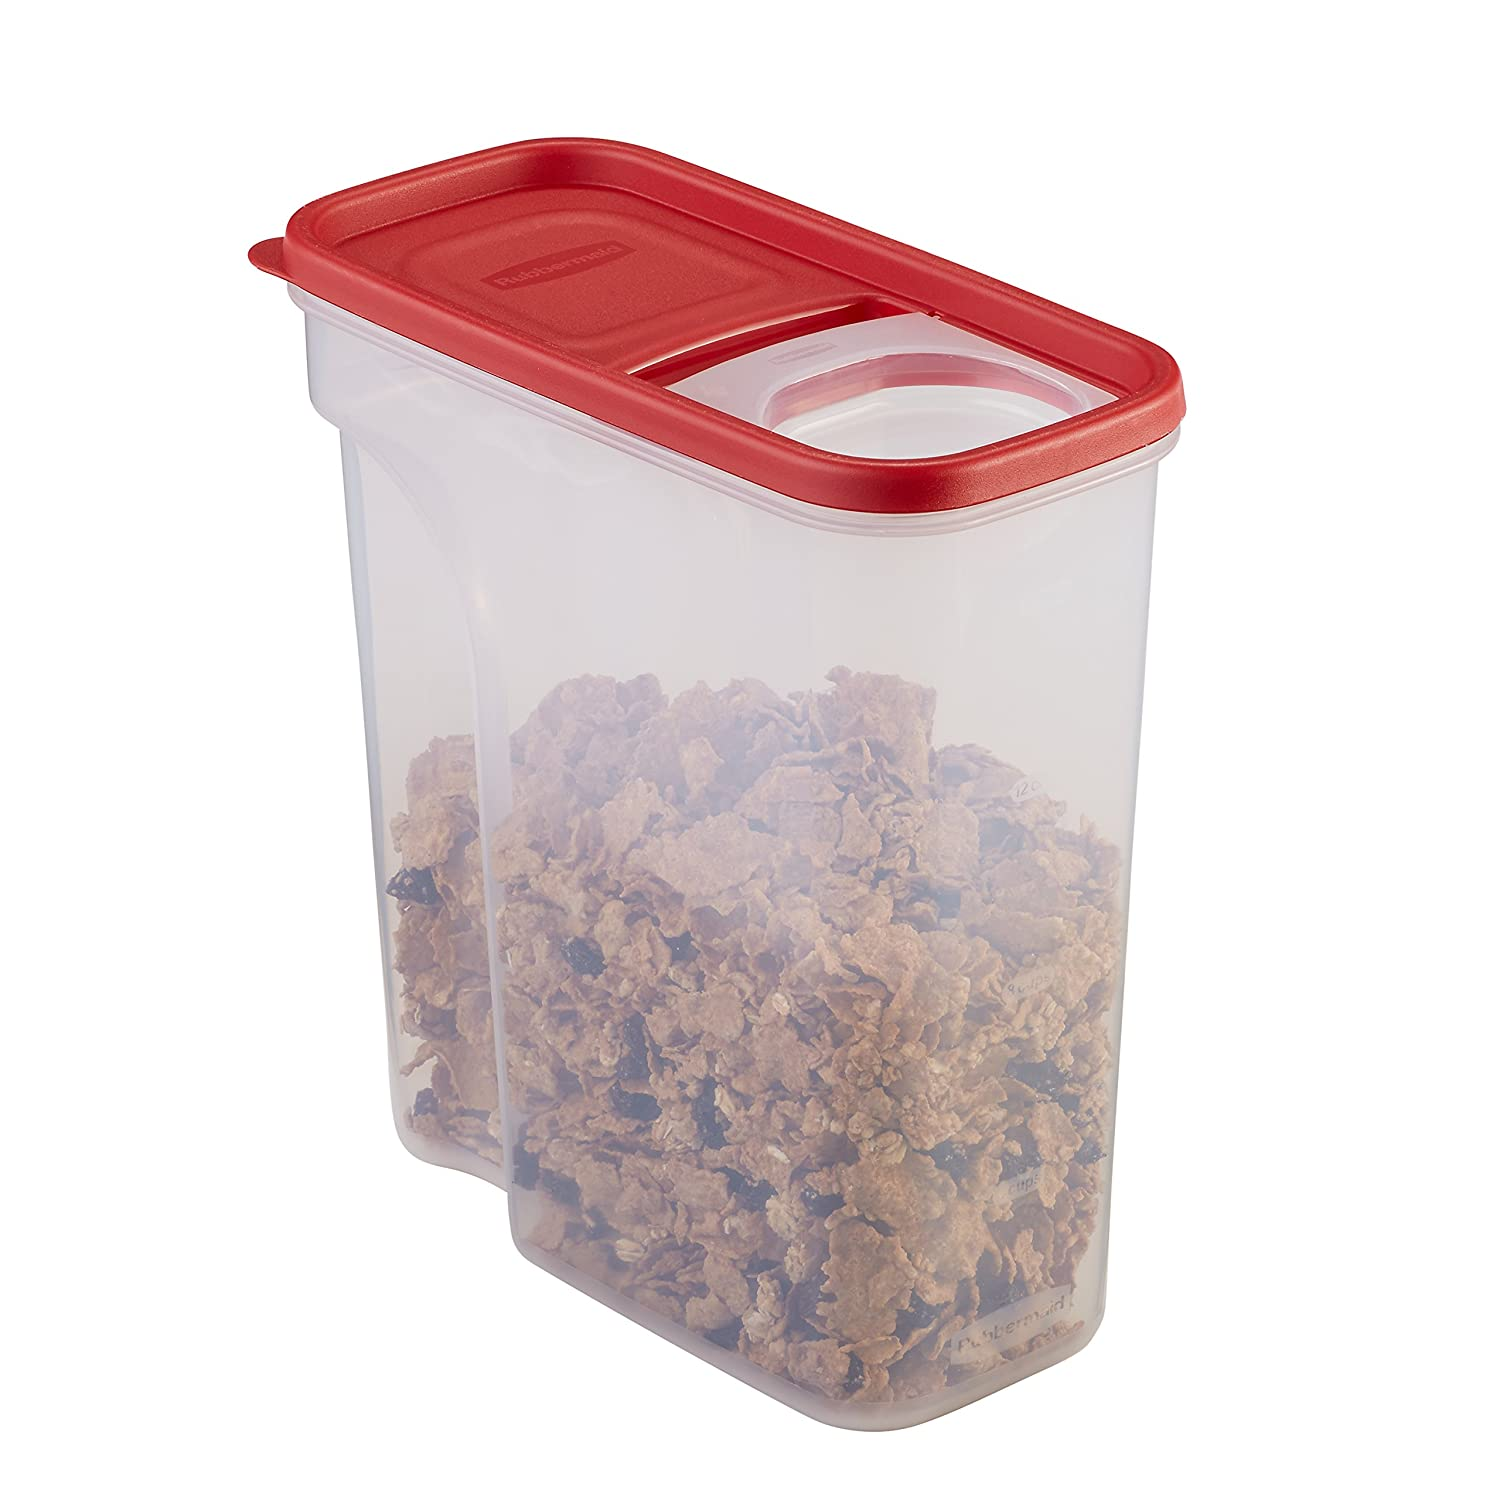 Bpa Free Food Containers Rubbermaid